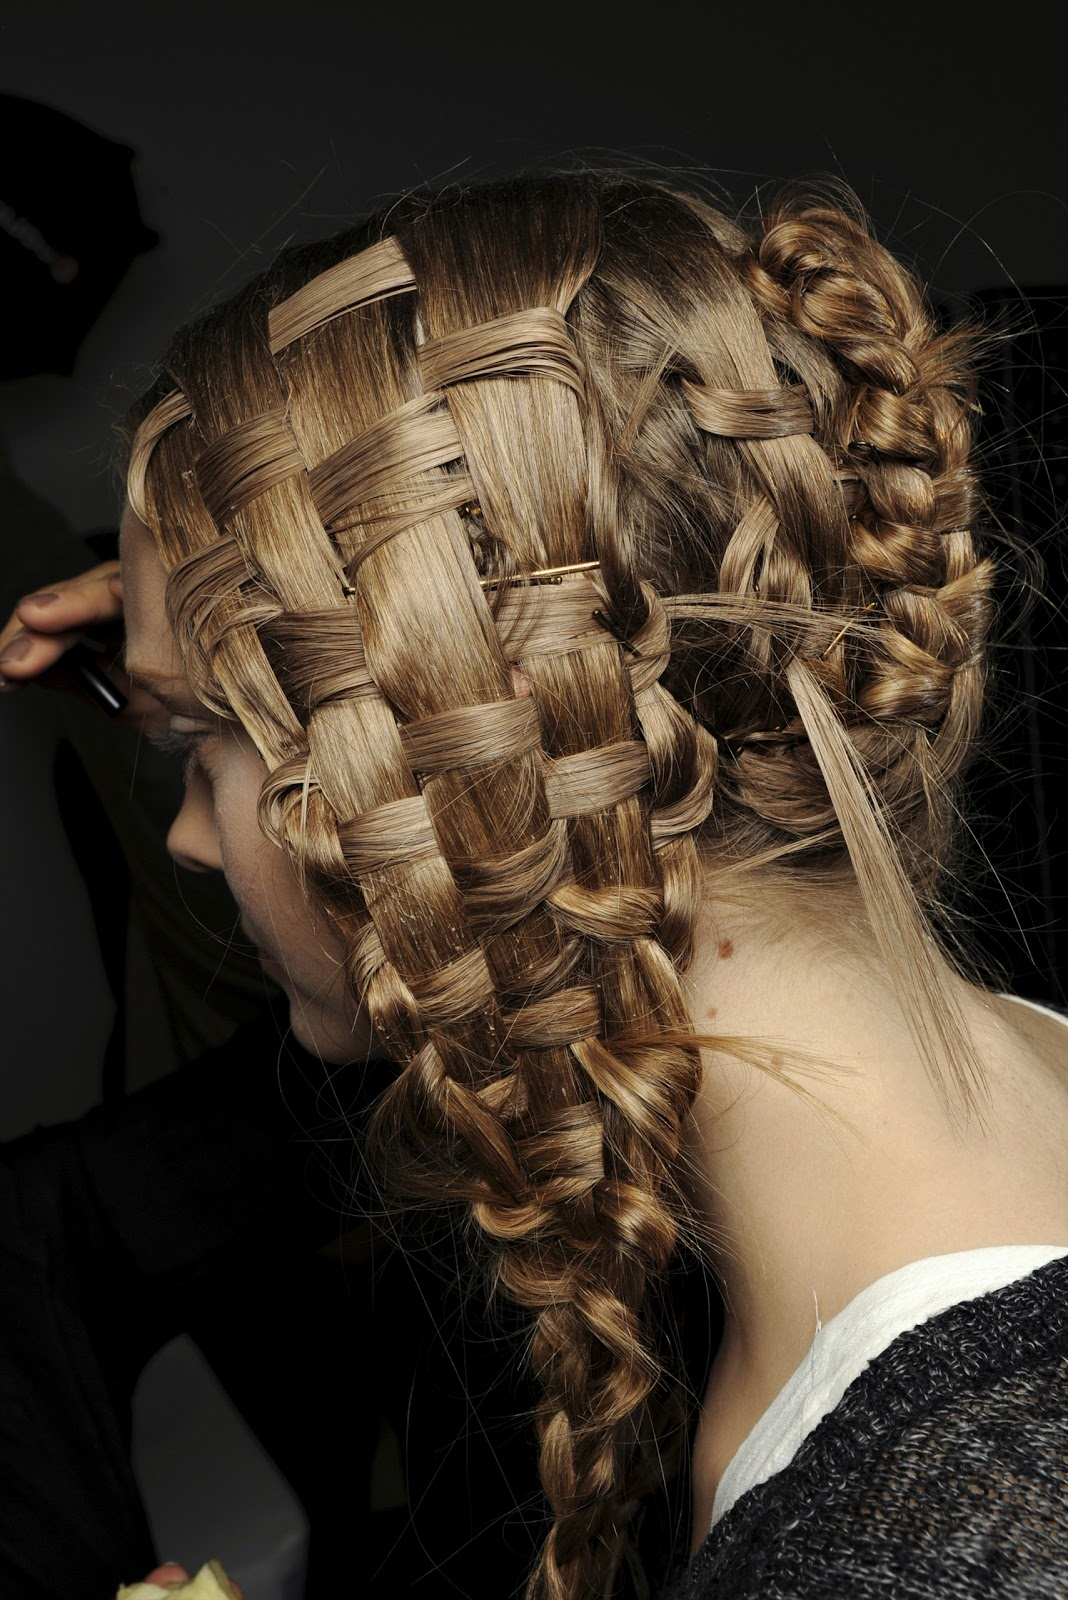 runway-basket-weave-braids-hairstyles-ideas